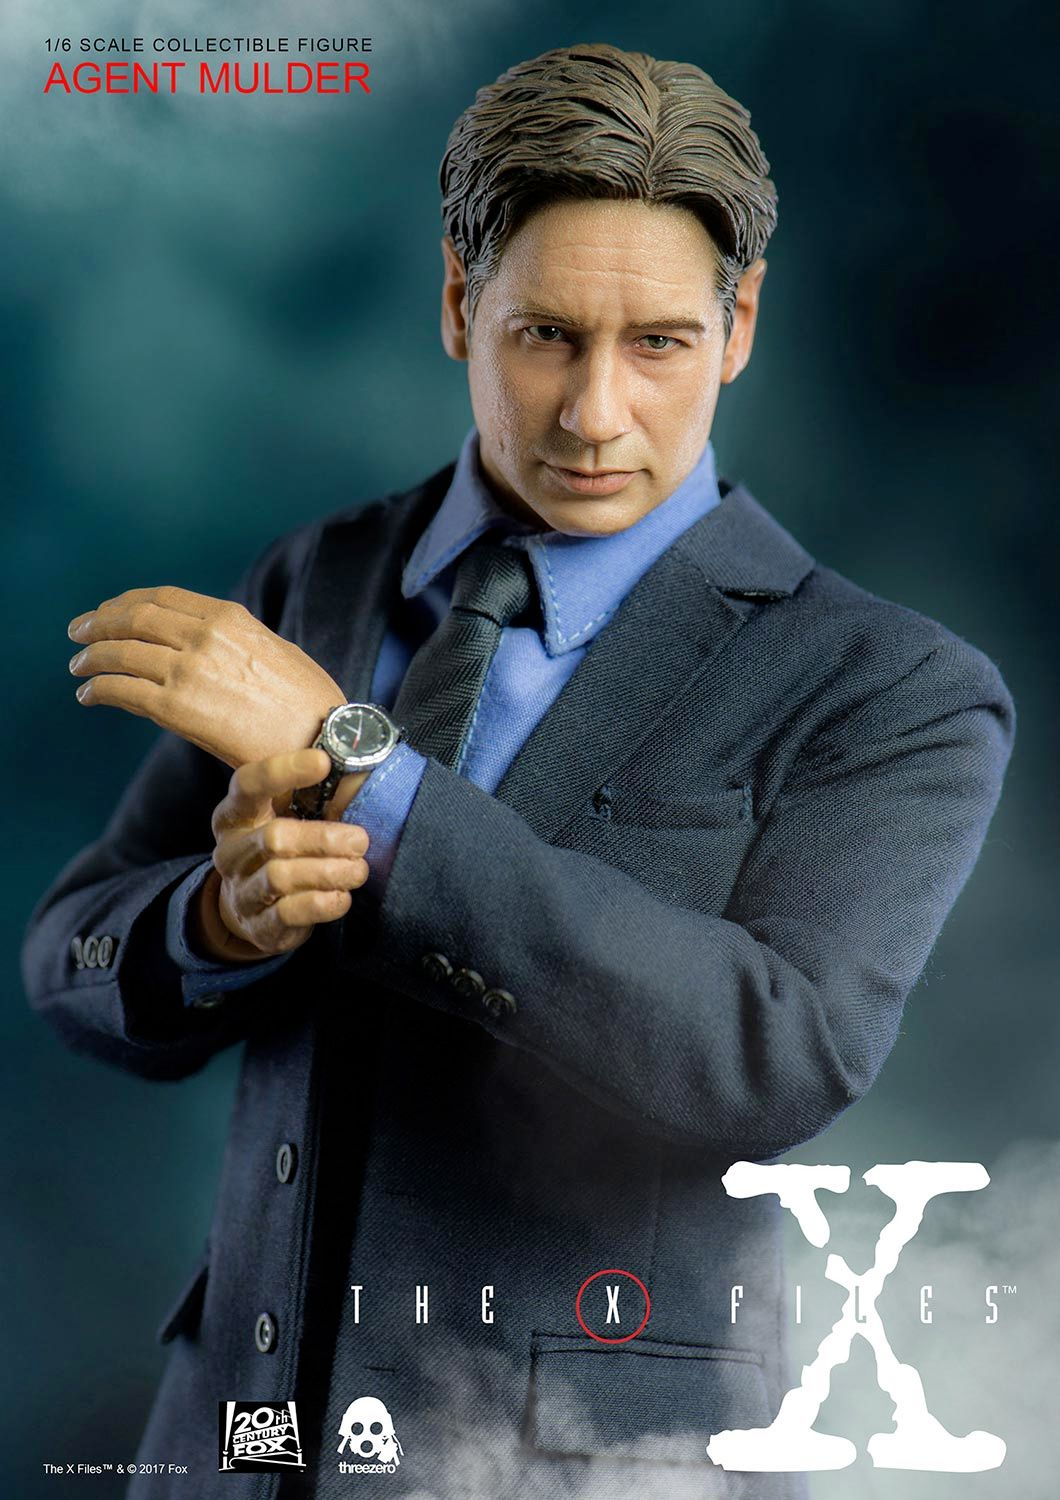 Agent-Mulder-X-Files-Collectible-Figure-ThreeZero-04